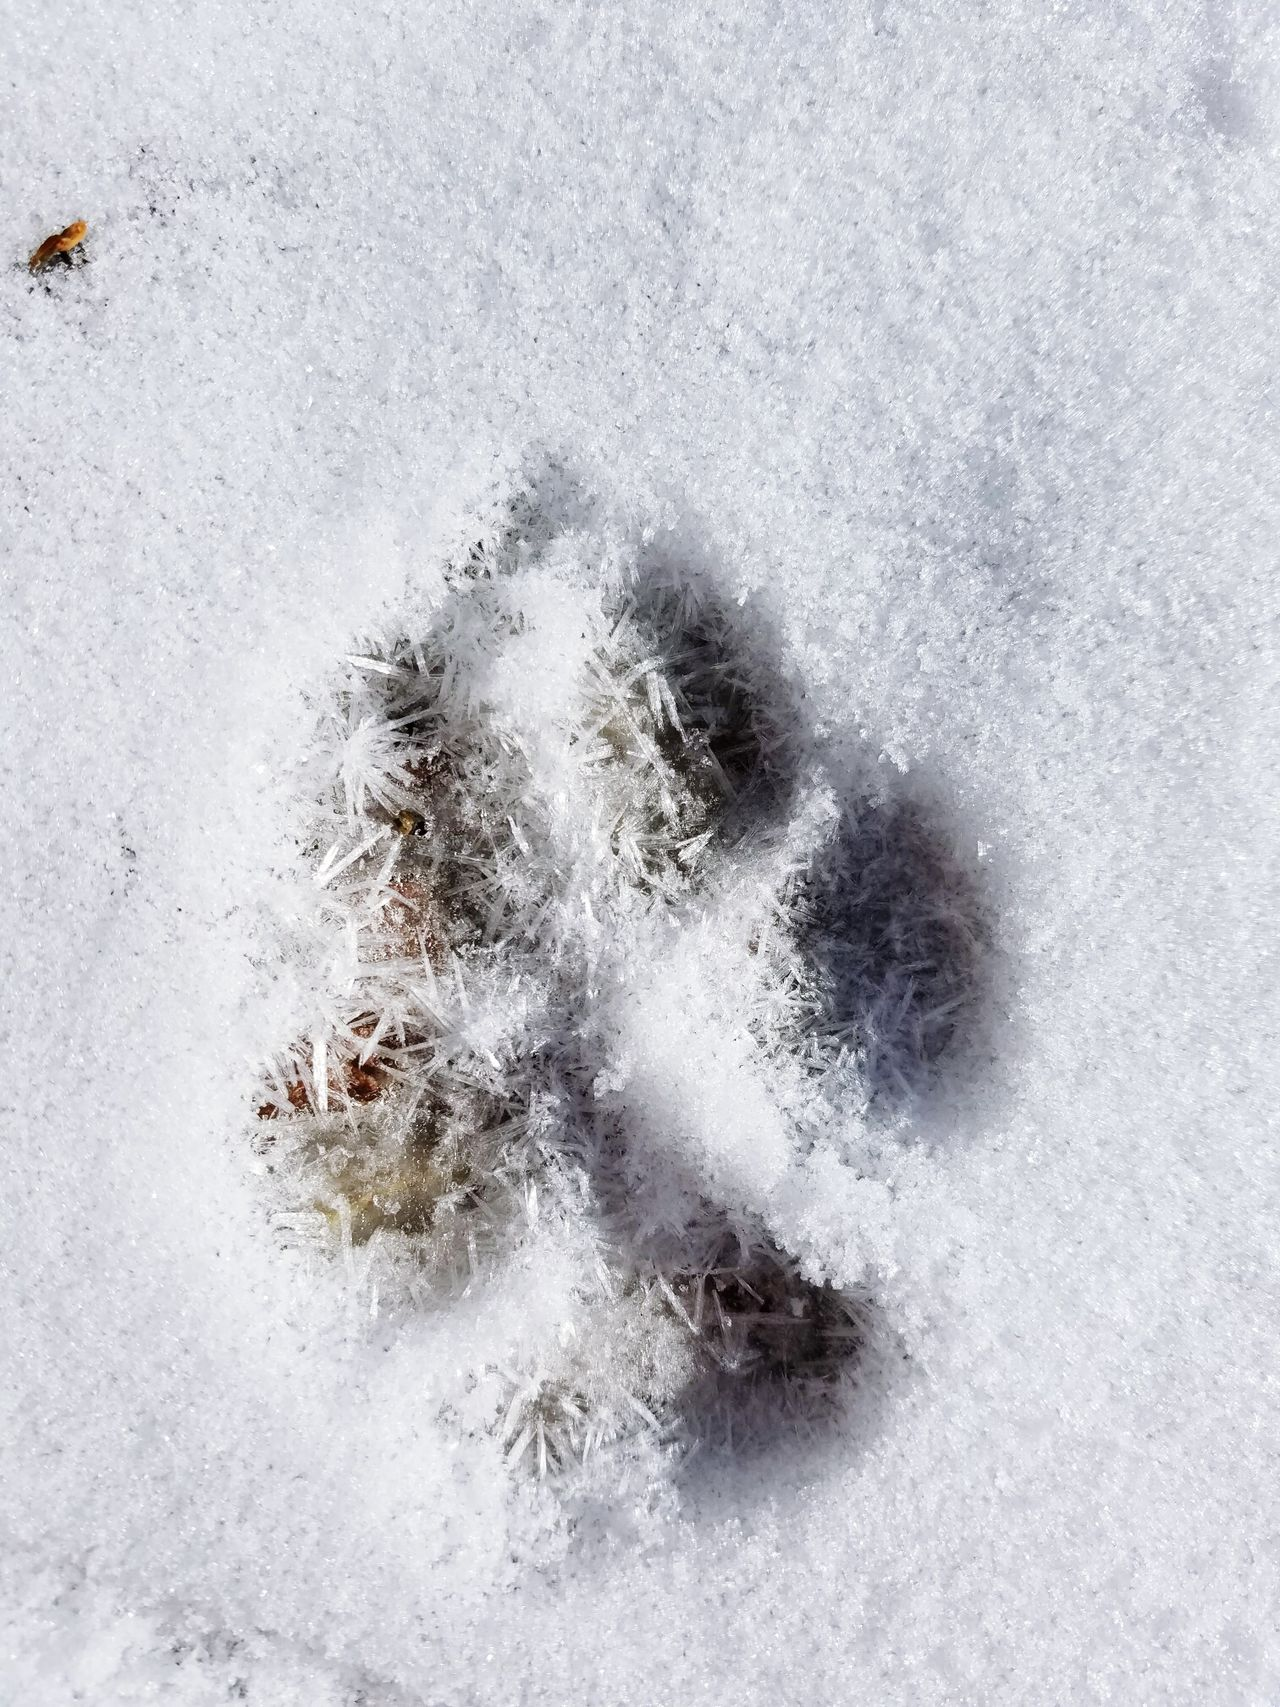 Dogs paw prints froze and crystallized! Foot Prints Frozen Crystalized Basalt Colorado